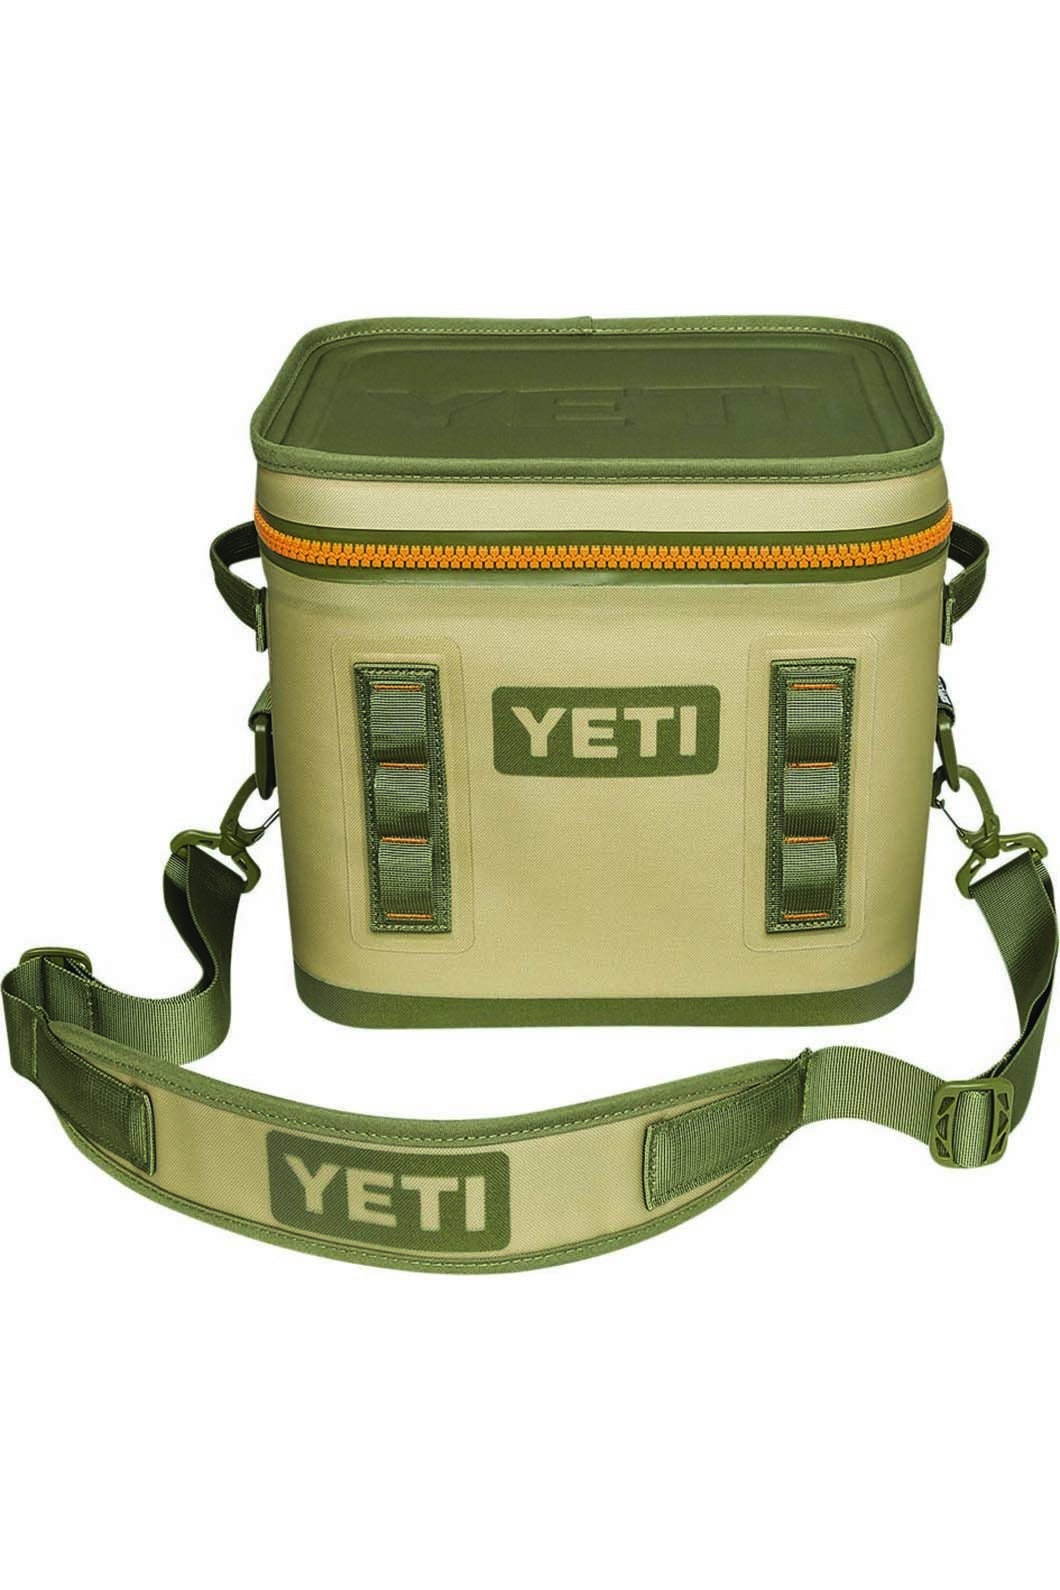 Yeti Hopper Flip Soft Cooler, Tan, hi-res